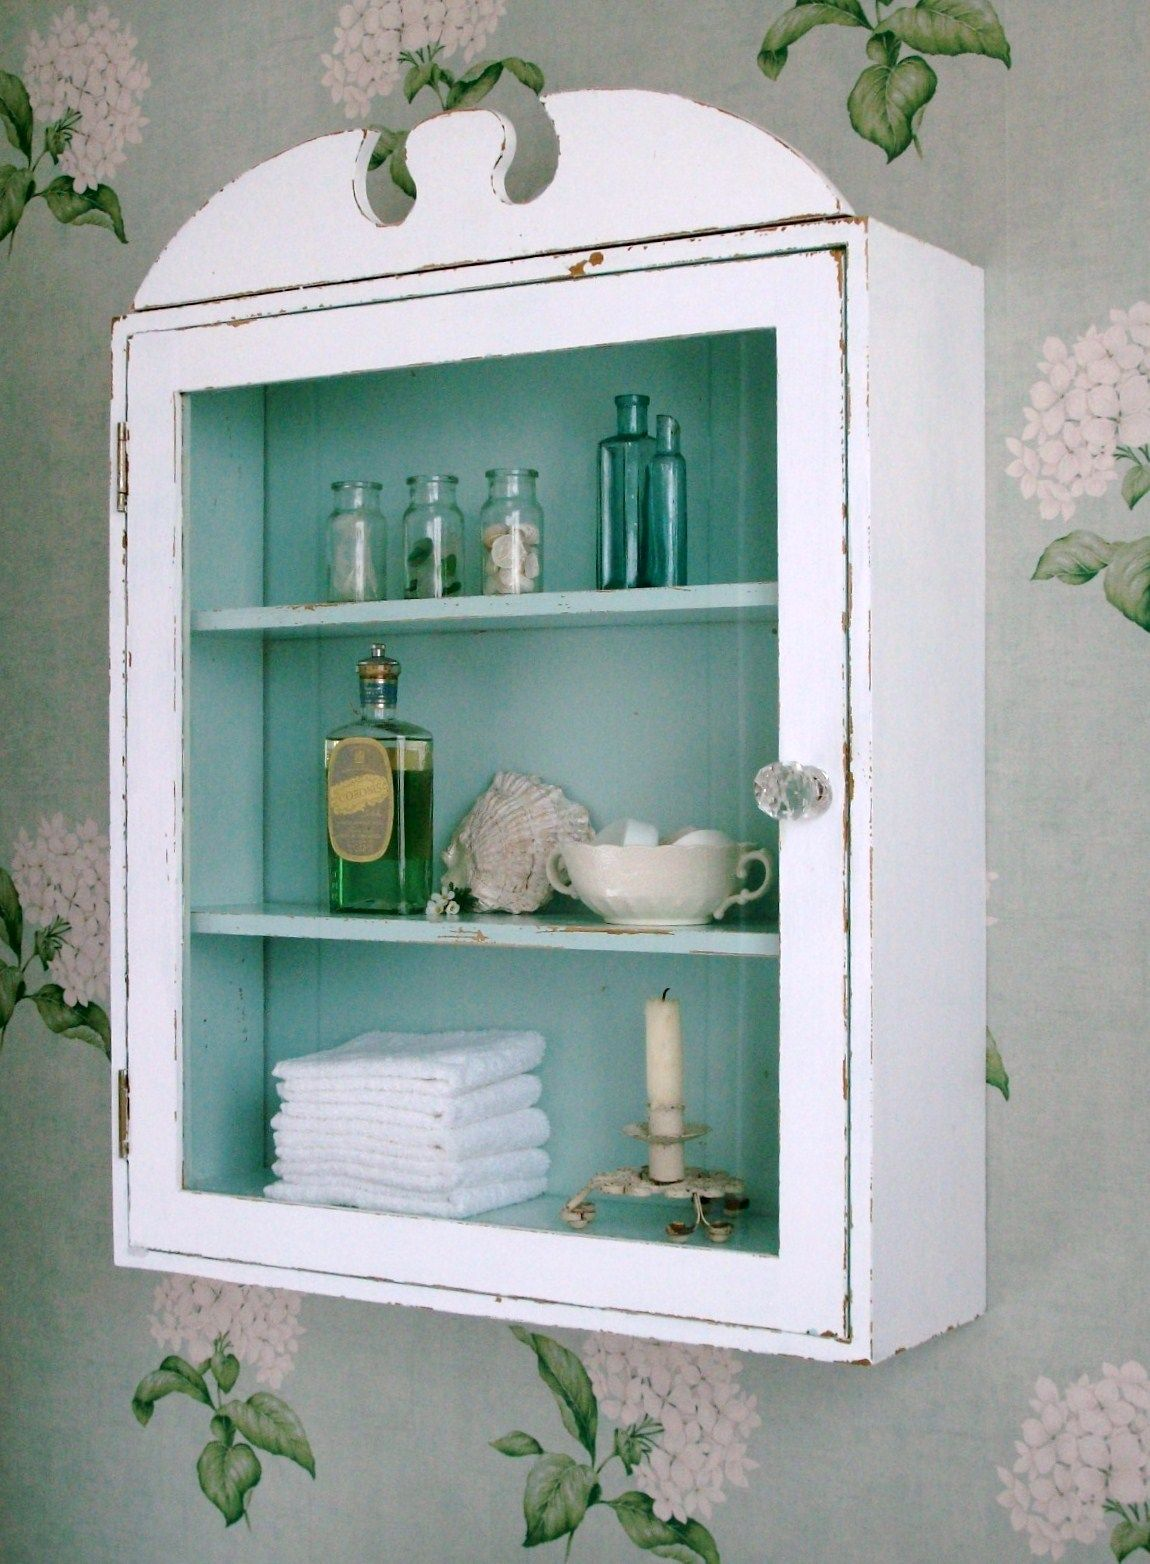 9 Clever Ways to Organize Your Medicine Cabinet | Pinterest | Doors ...